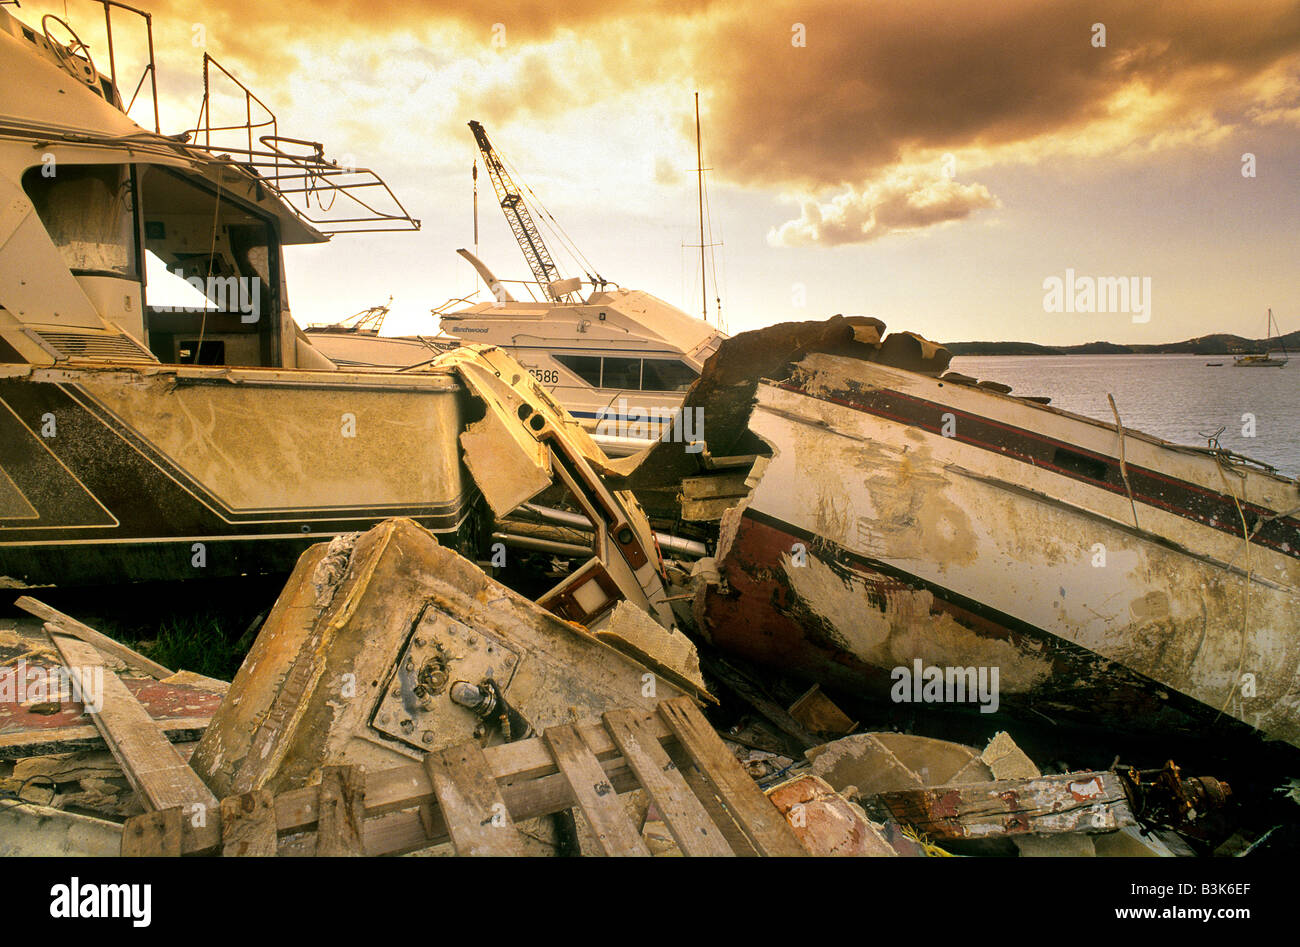 Destruction of a harbor area on the island of St Maarten after a hurricane - Stock Image